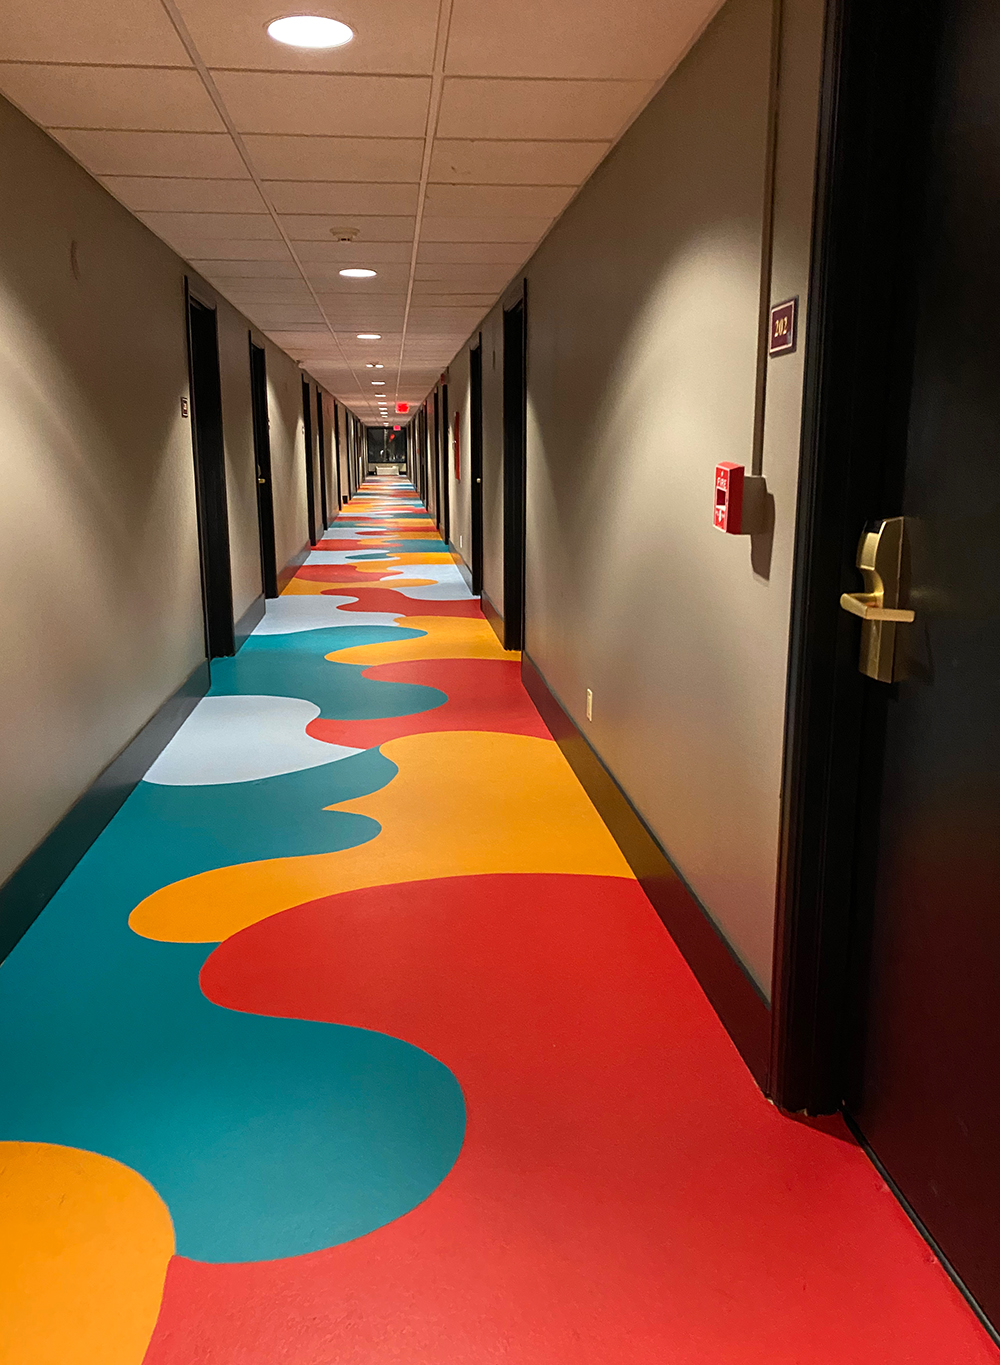 Hallway with red, orange and teal blobs painted on the floor